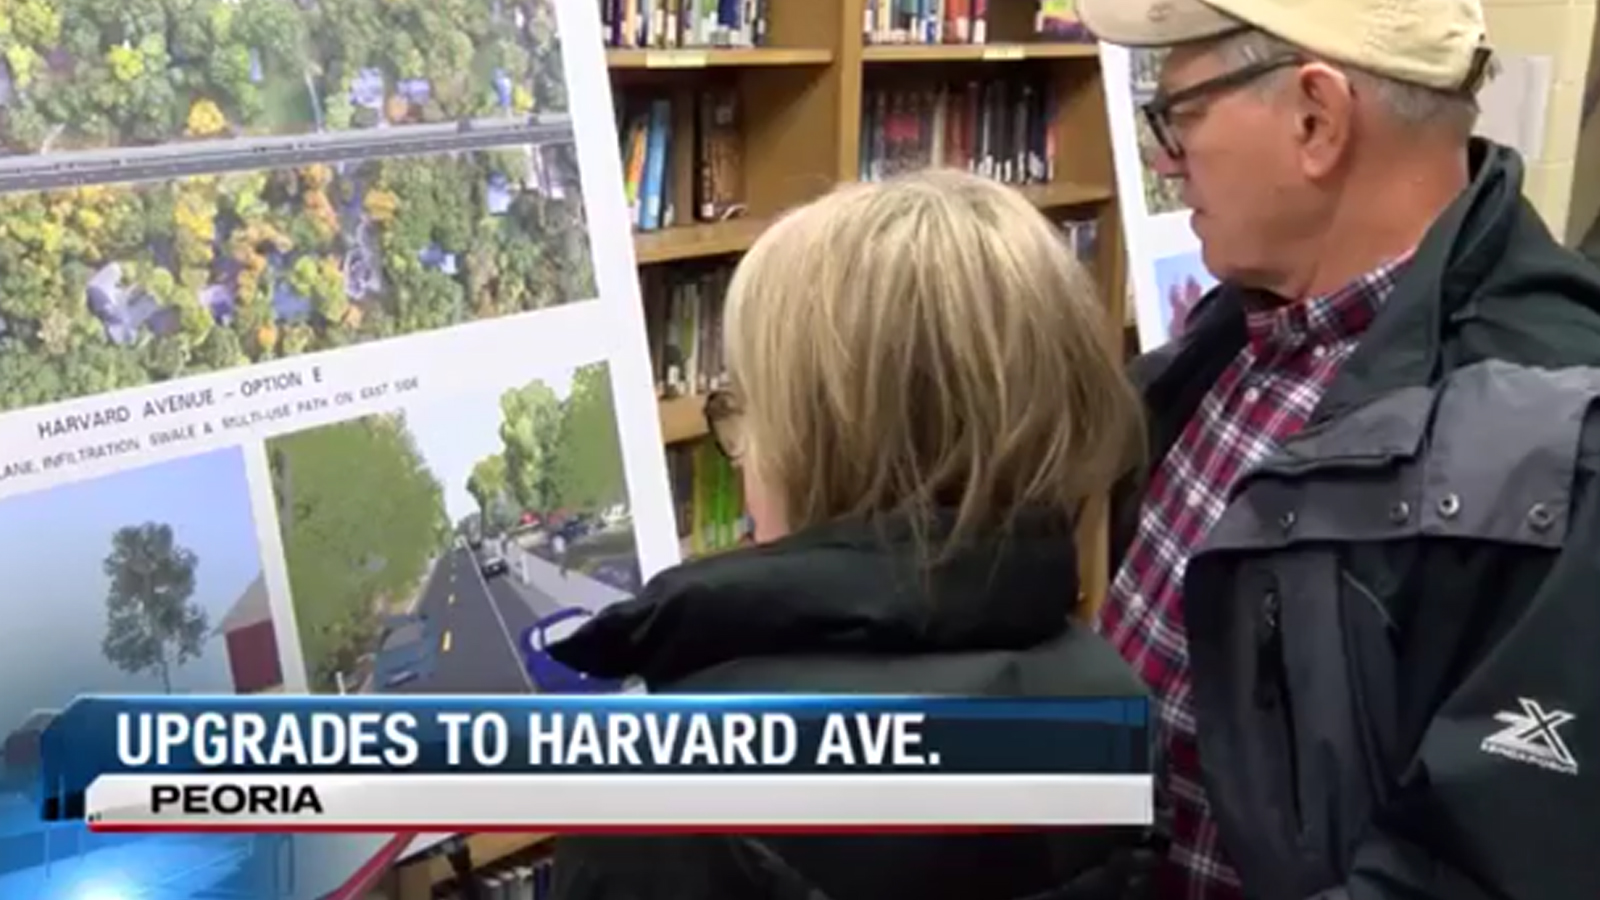 Upgrades Coming for Harvard Ave